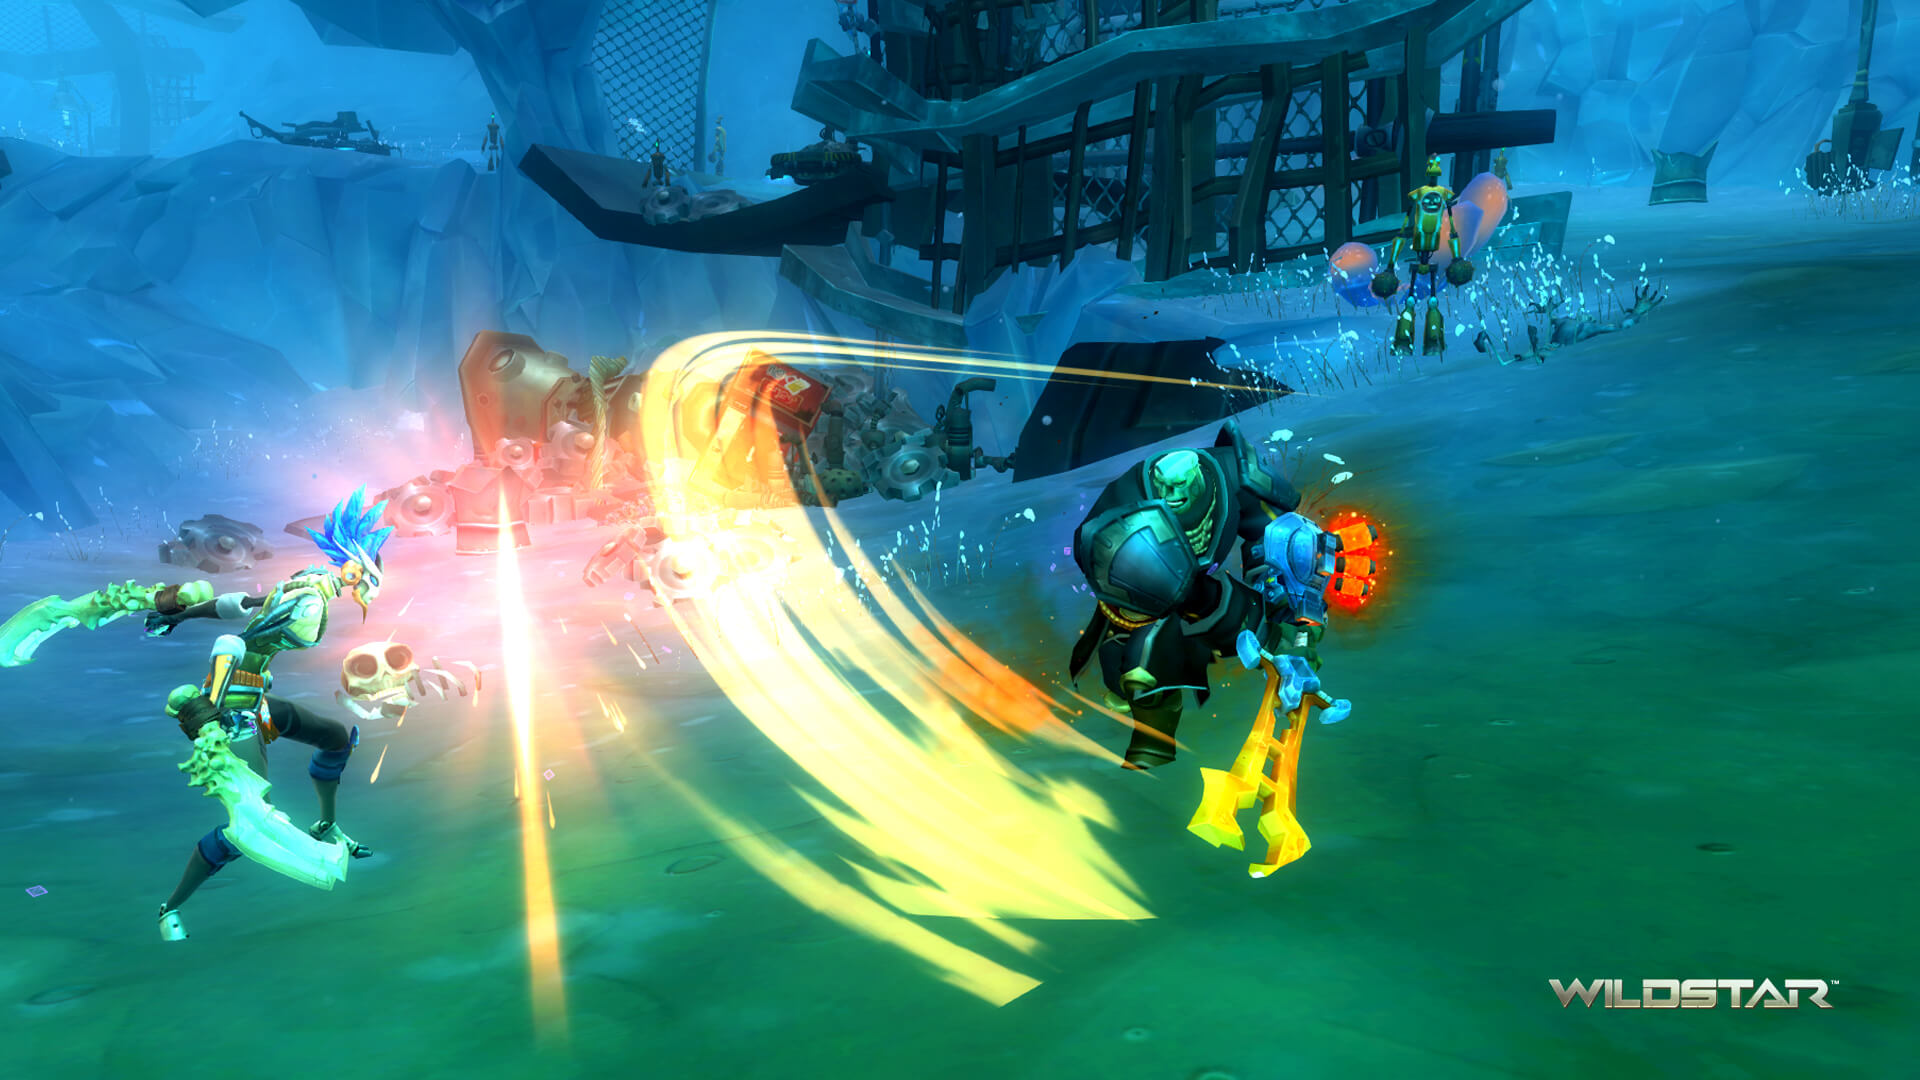 Wildstar - Stalker Class Screenshot